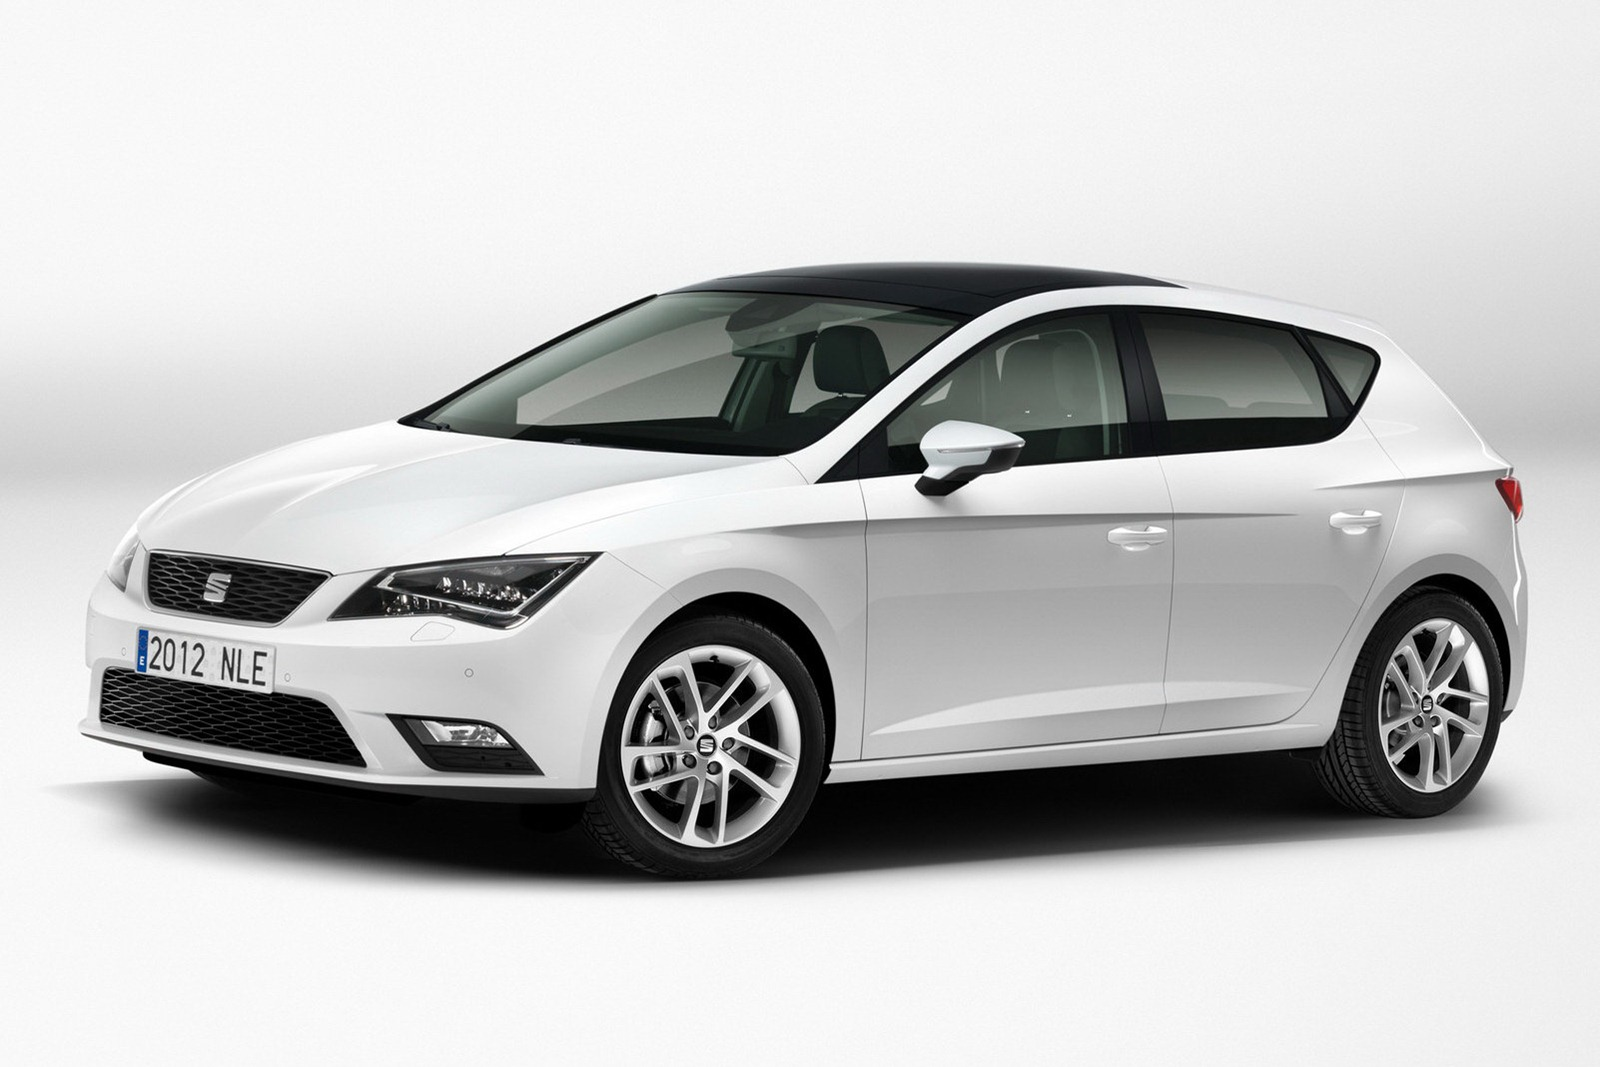 stunning new seat leon official pictures leaked autoevolution. Black Bedroom Furniture Sets. Home Design Ideas